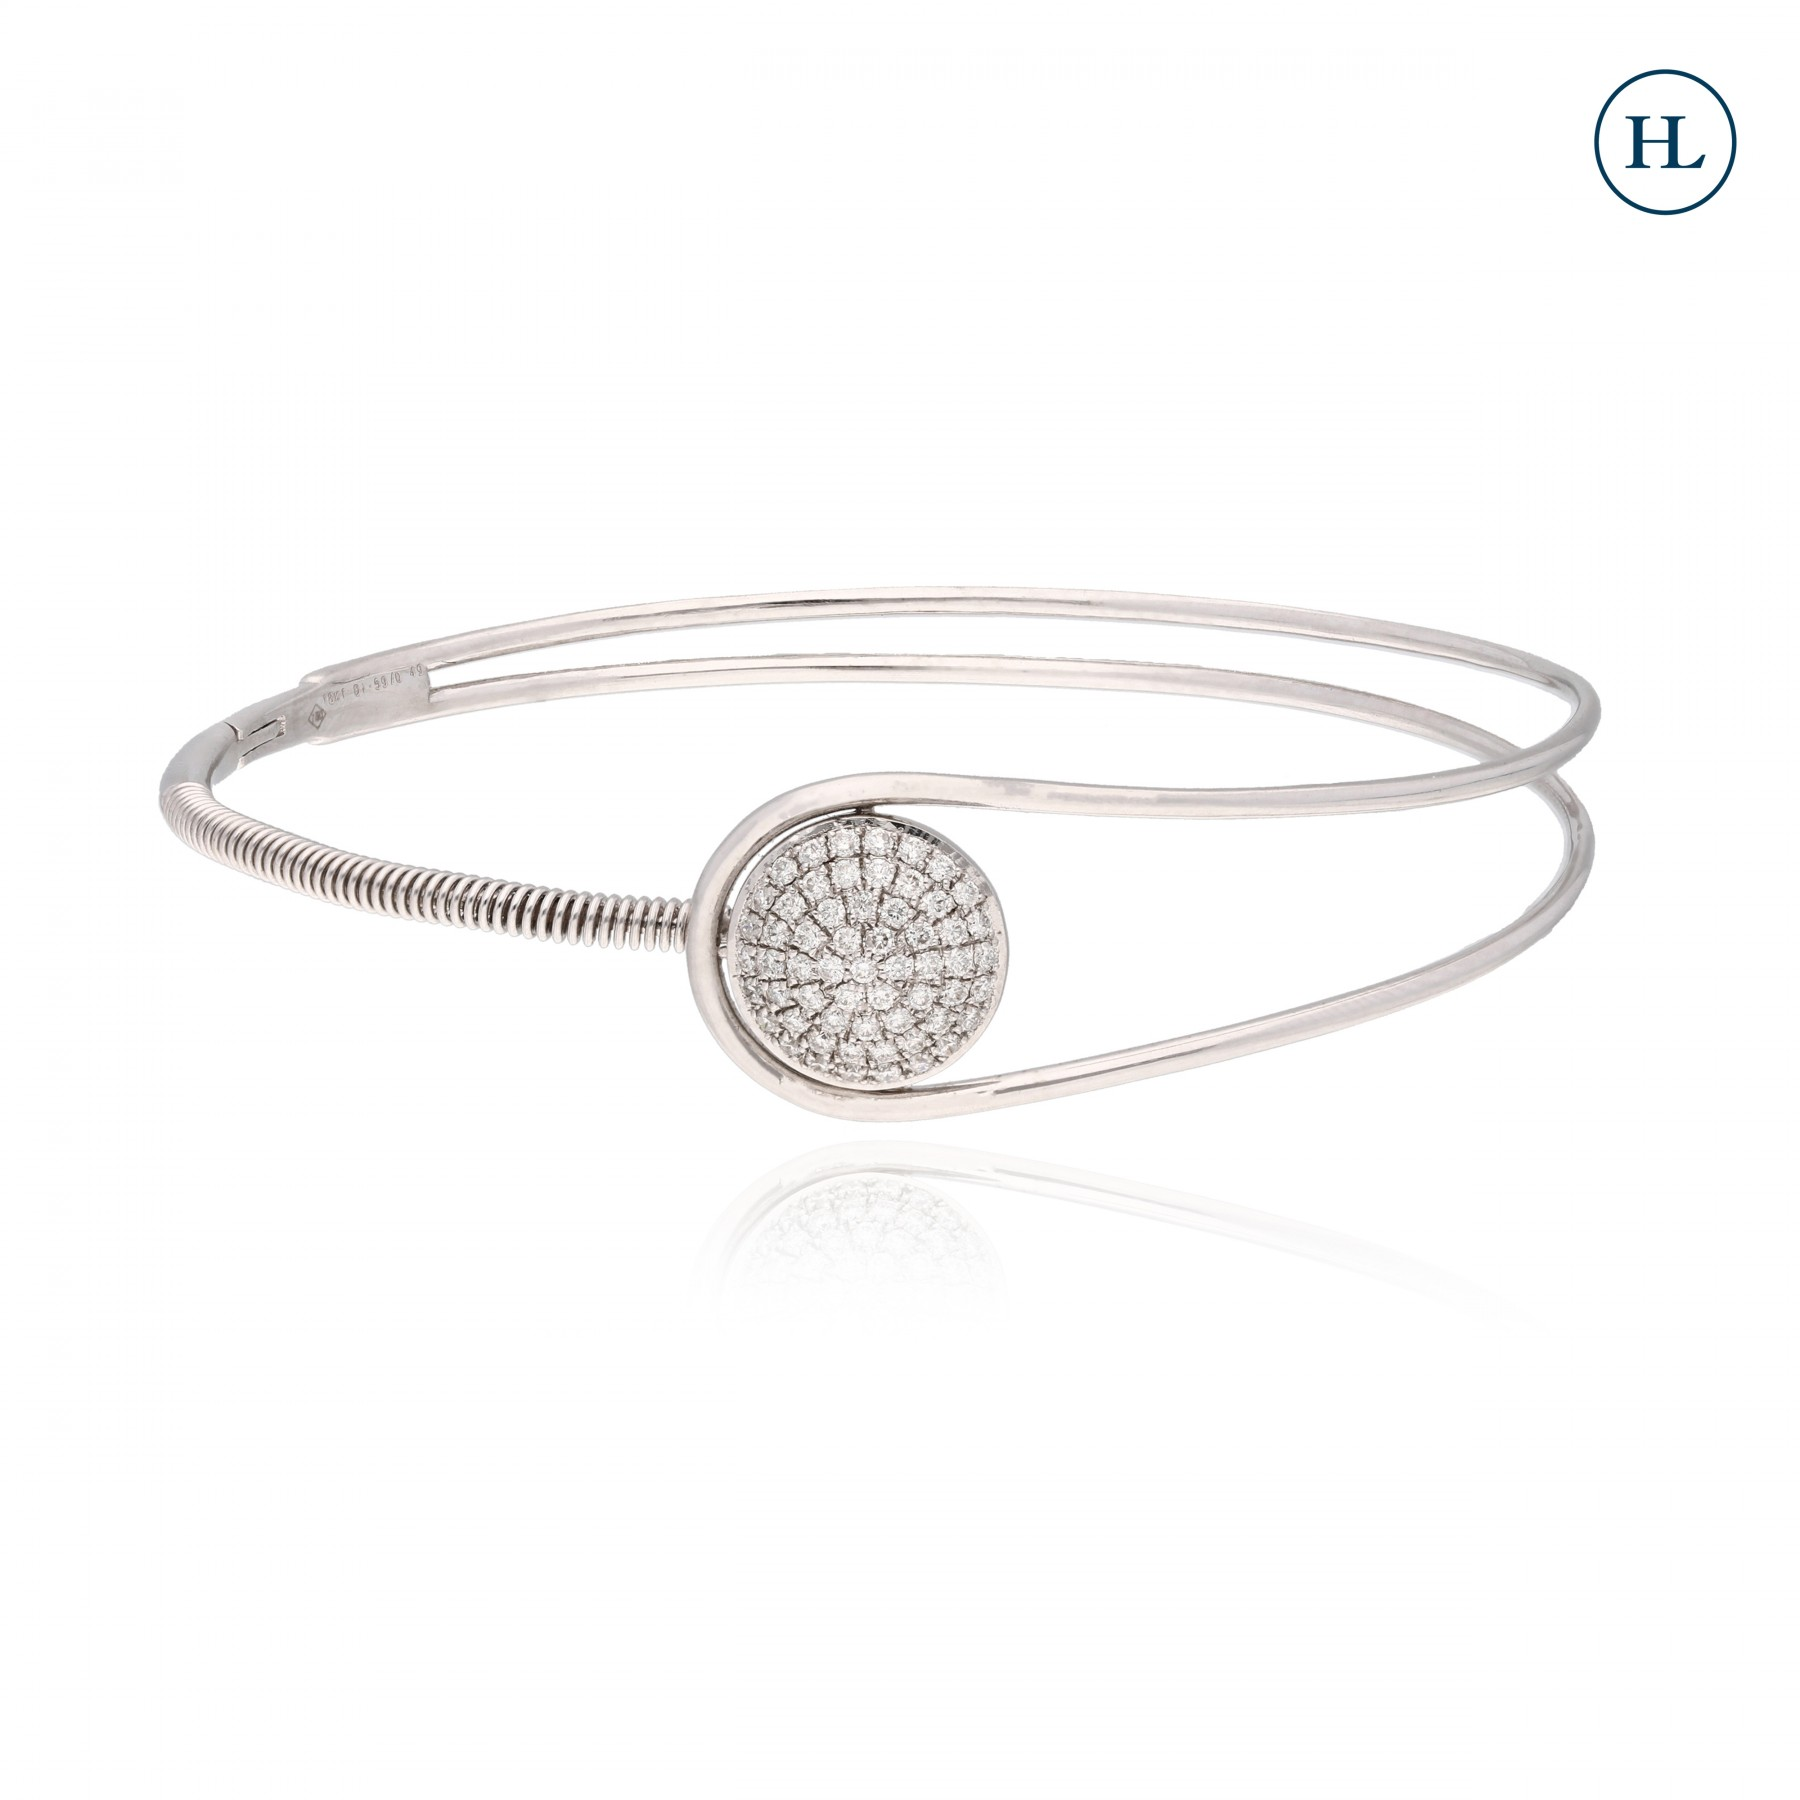 Two Lines Diamond Bracelet